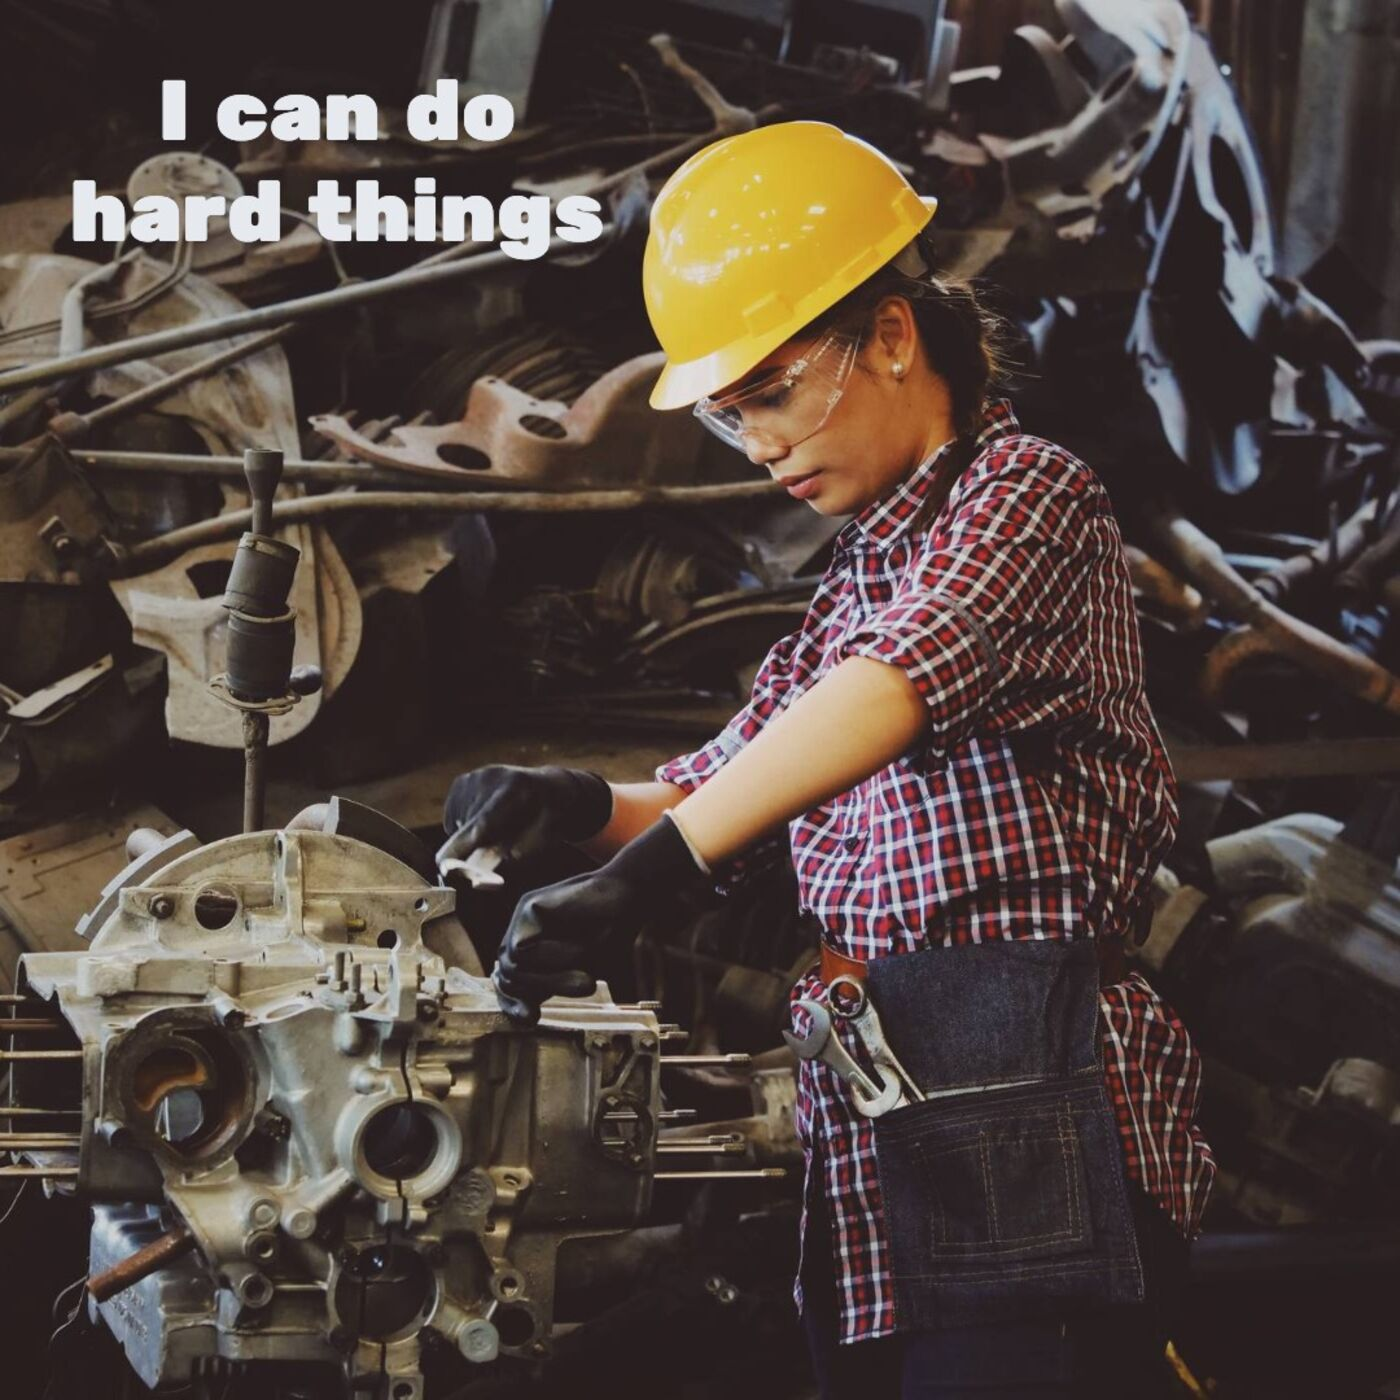 # 116 I can do hard things